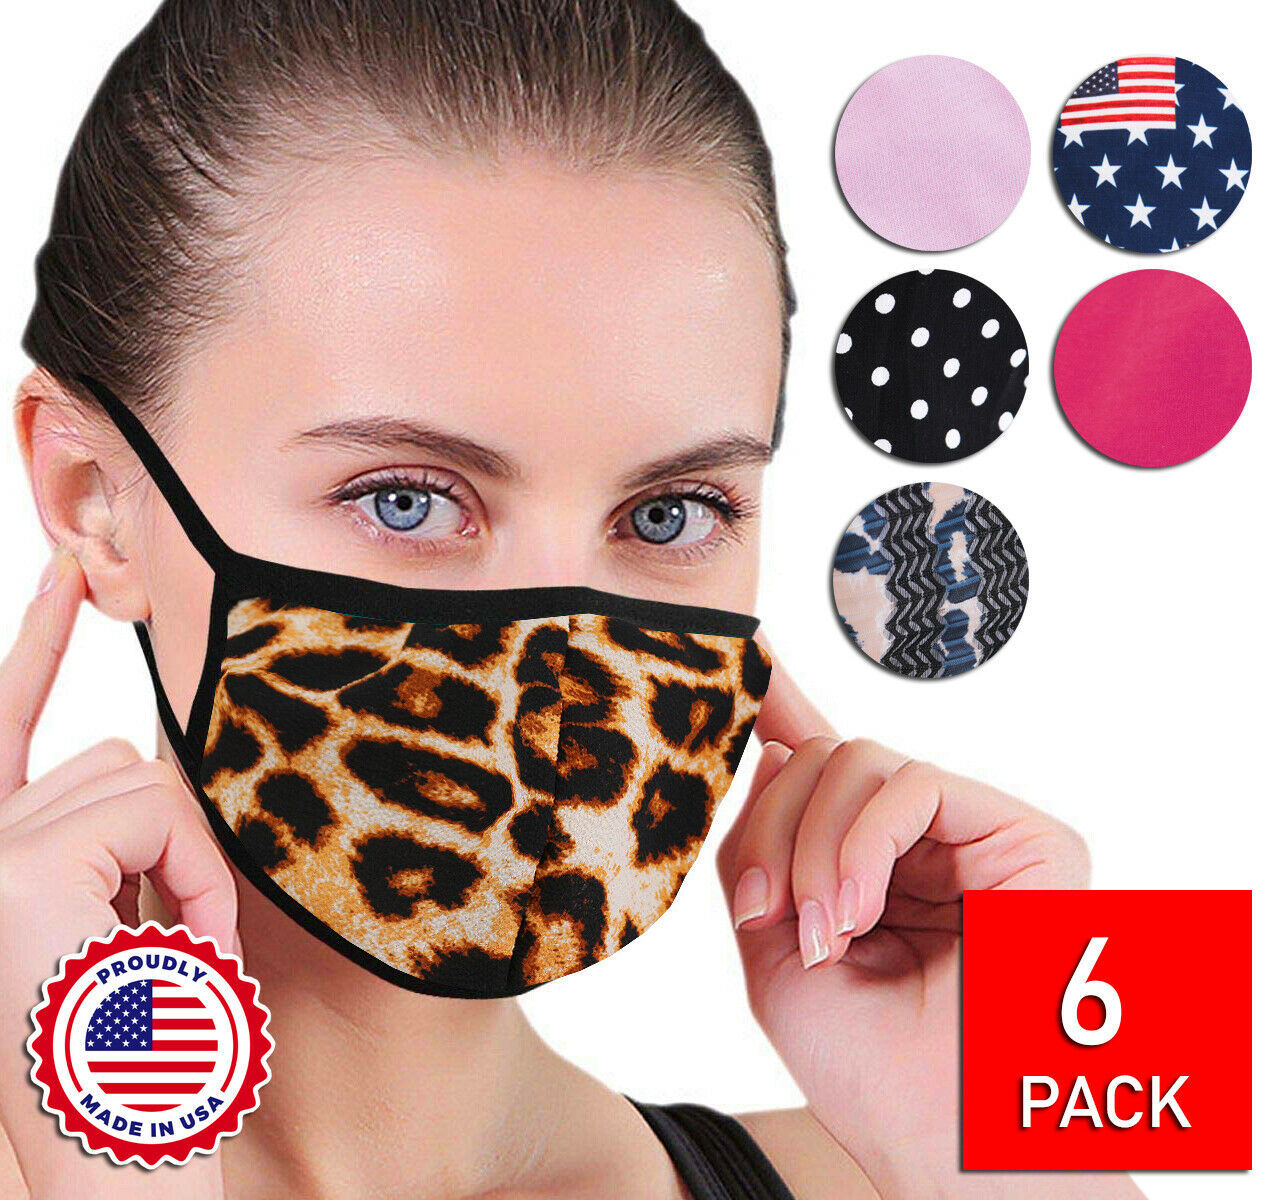 Women's Reusable Face Covers Cloth Protection Masks Handmade In The USA Lot of 6